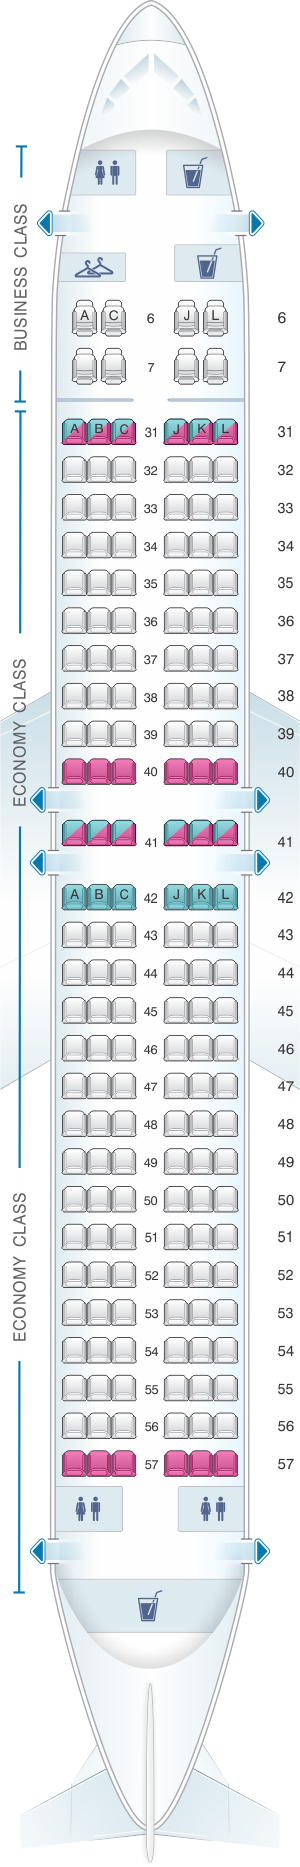 Seat map for China Eastern Airlines Boeing B737 800 170PAX